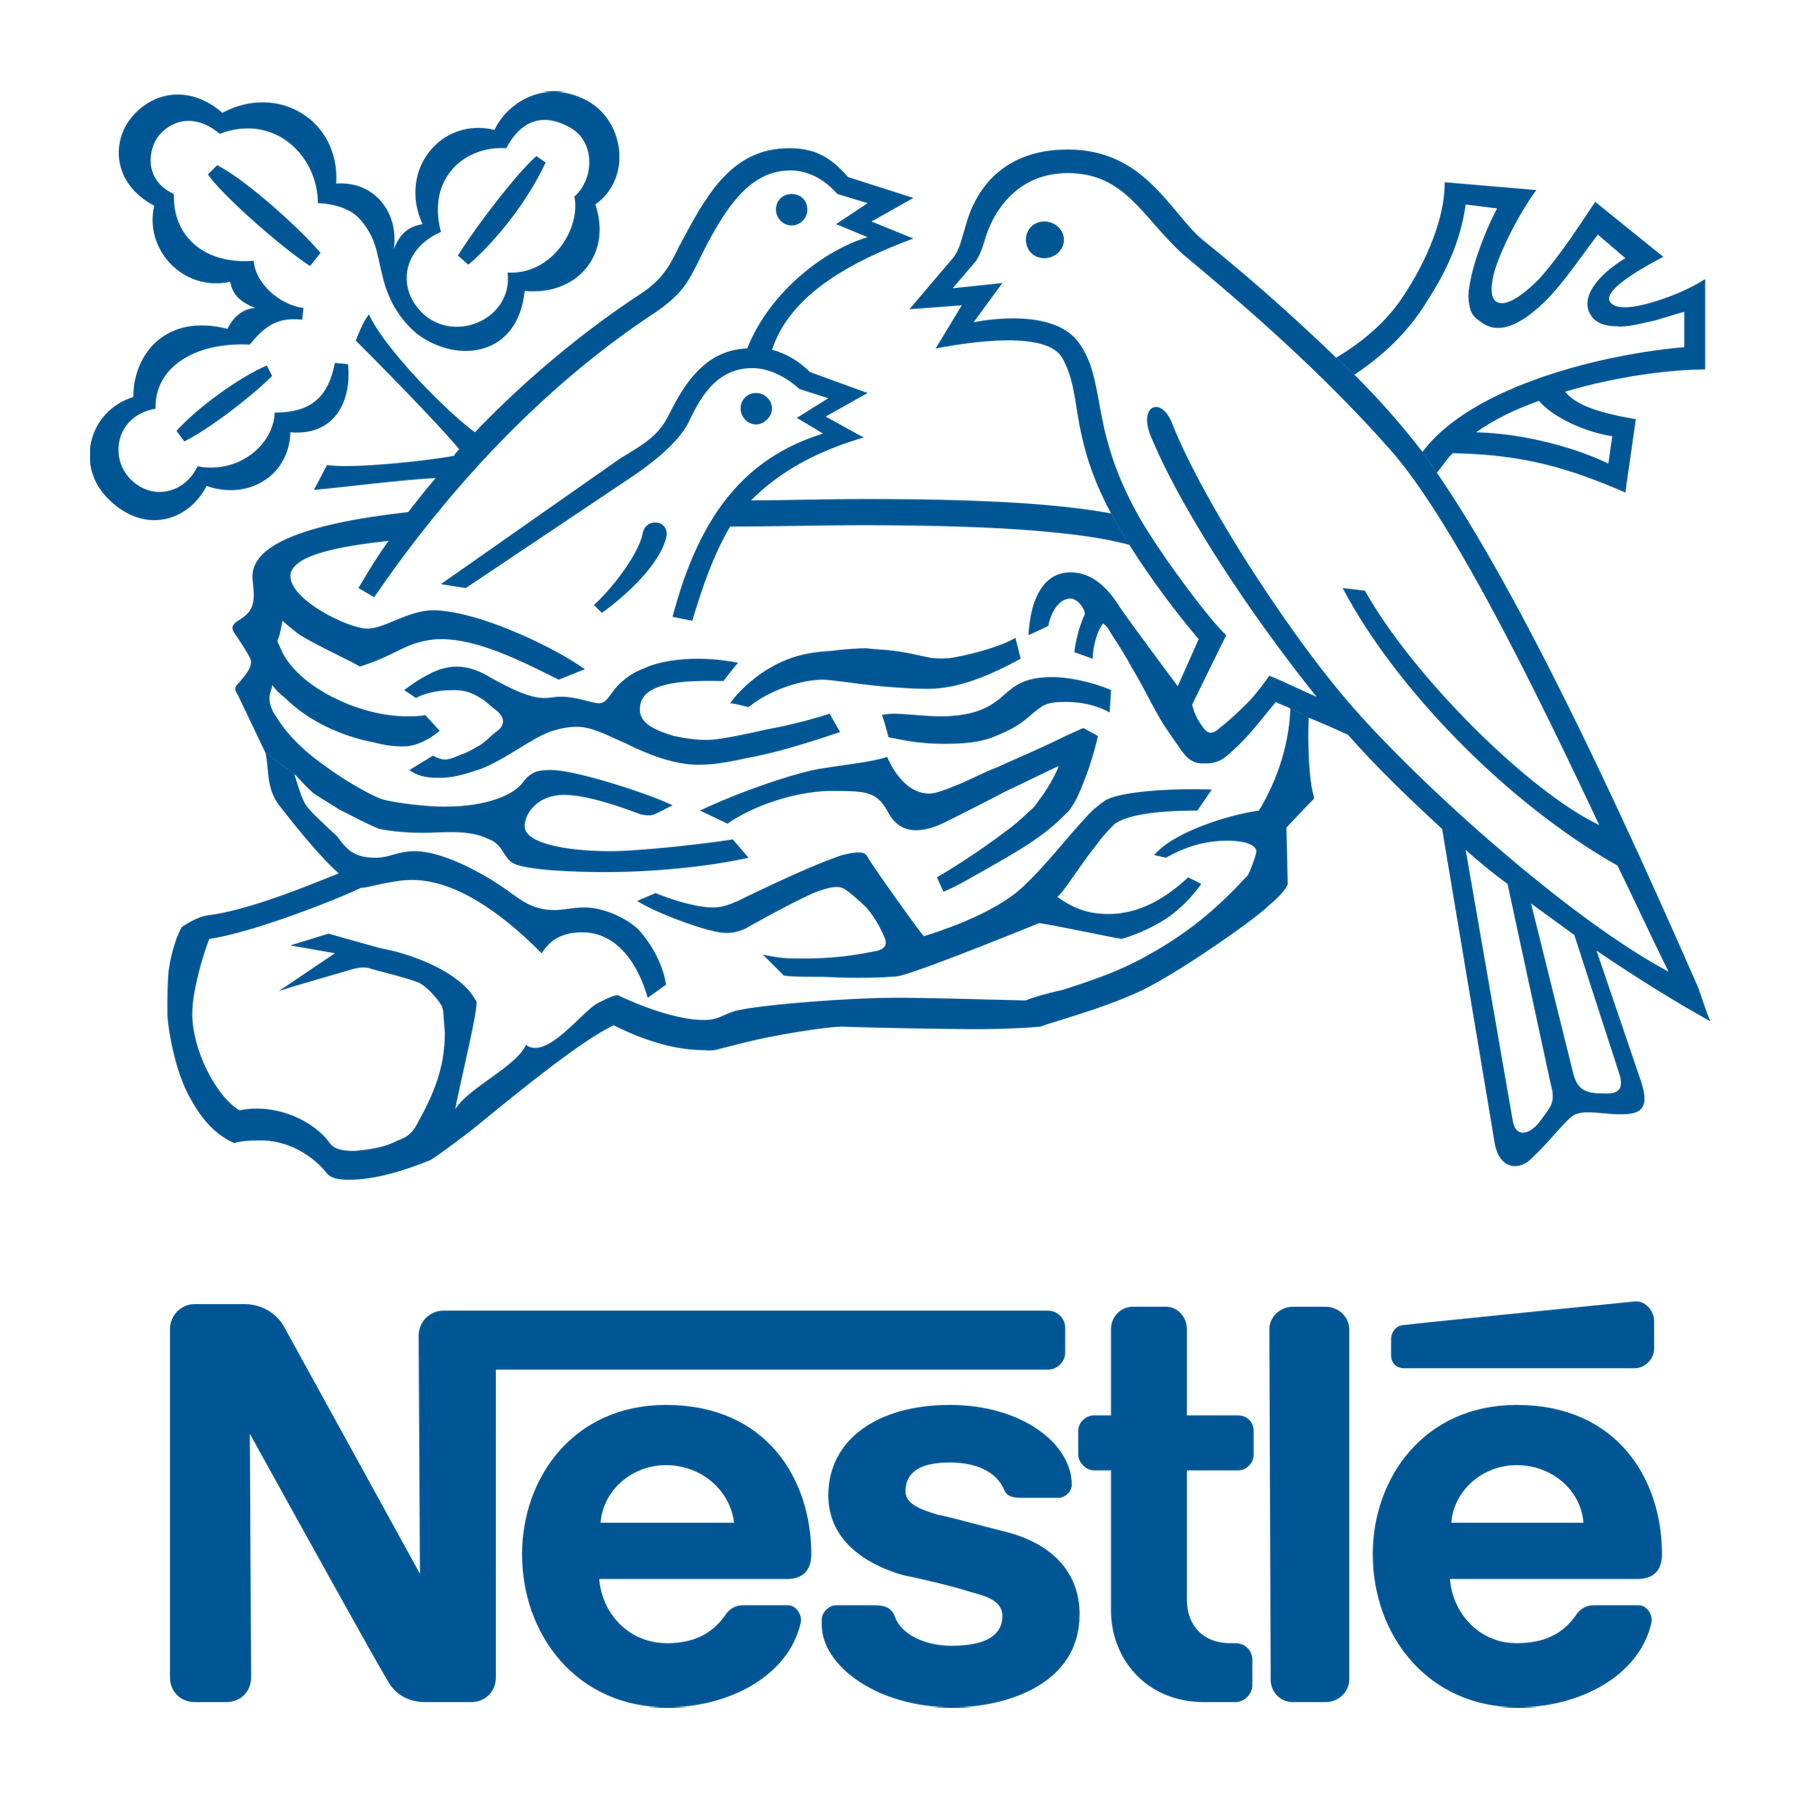 Meaning Nestle logo and symbol | history and evolution